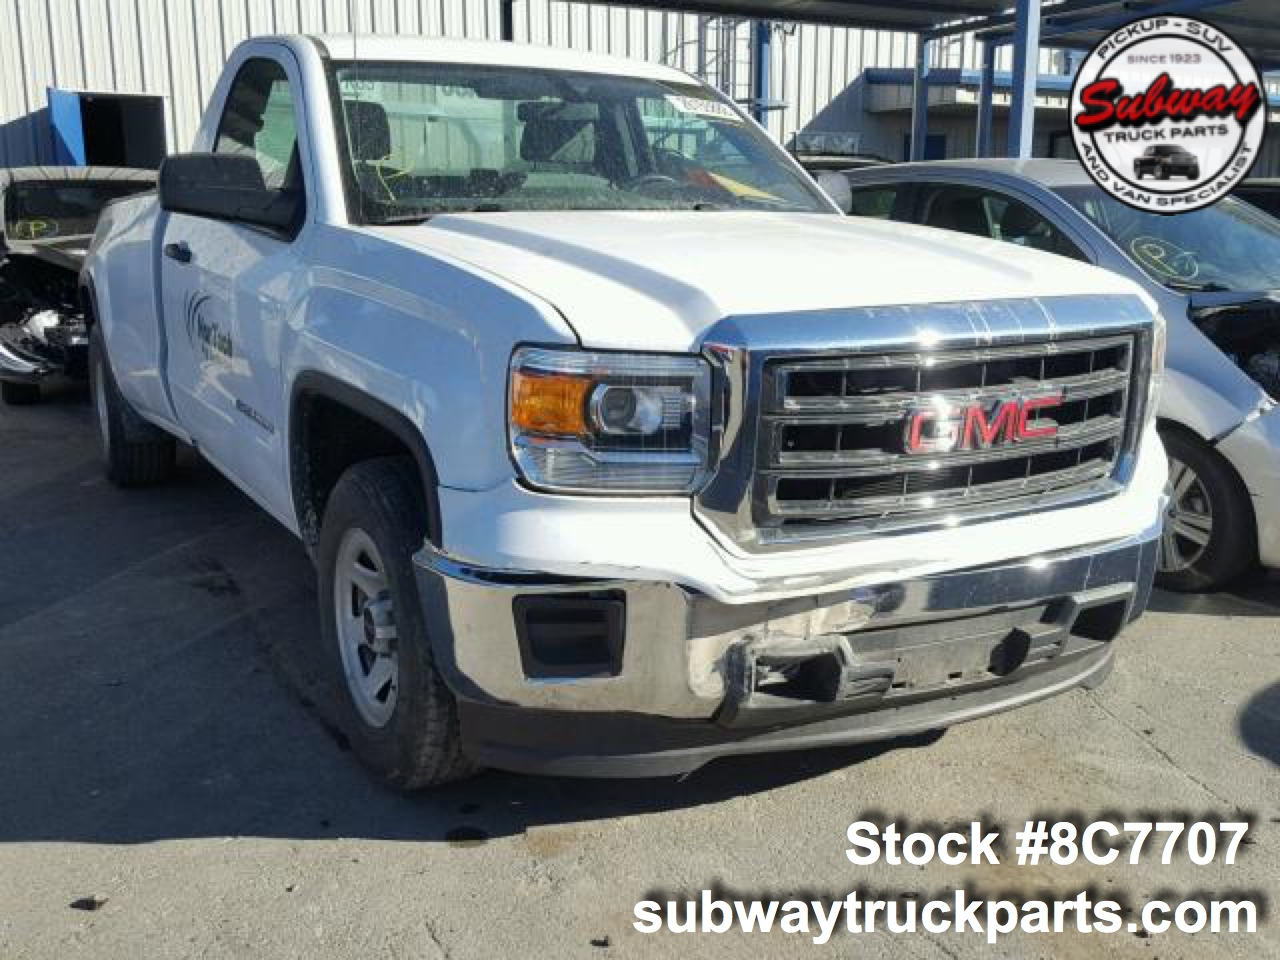 Gmc Truck Parts >> Used Parts 2015 Gmc Sierra 1500 Subway Truck Parts